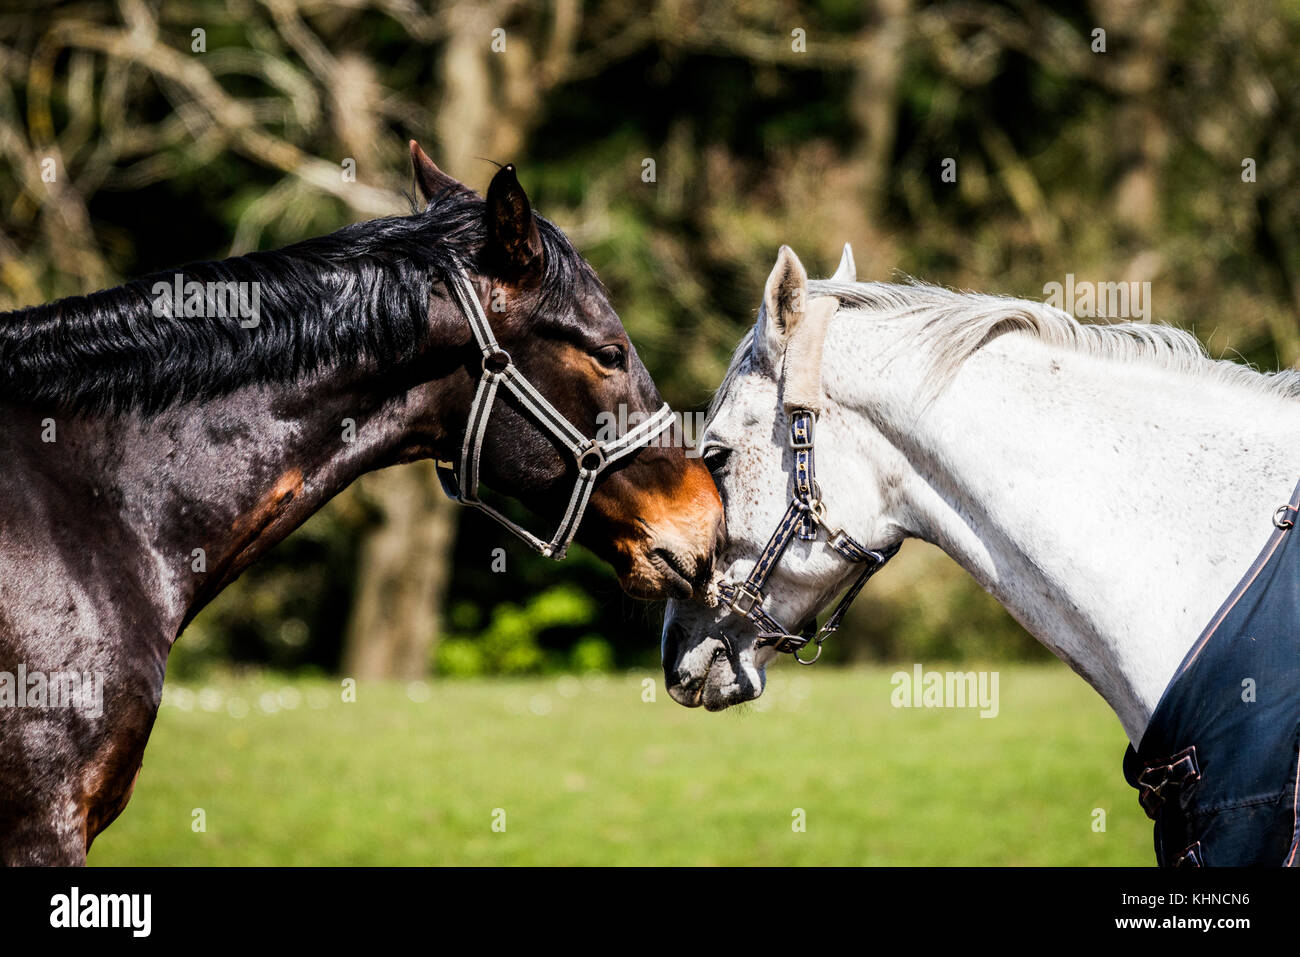 Two horses kissing on a rural field in the spring white and brown horse making out - Stock Image